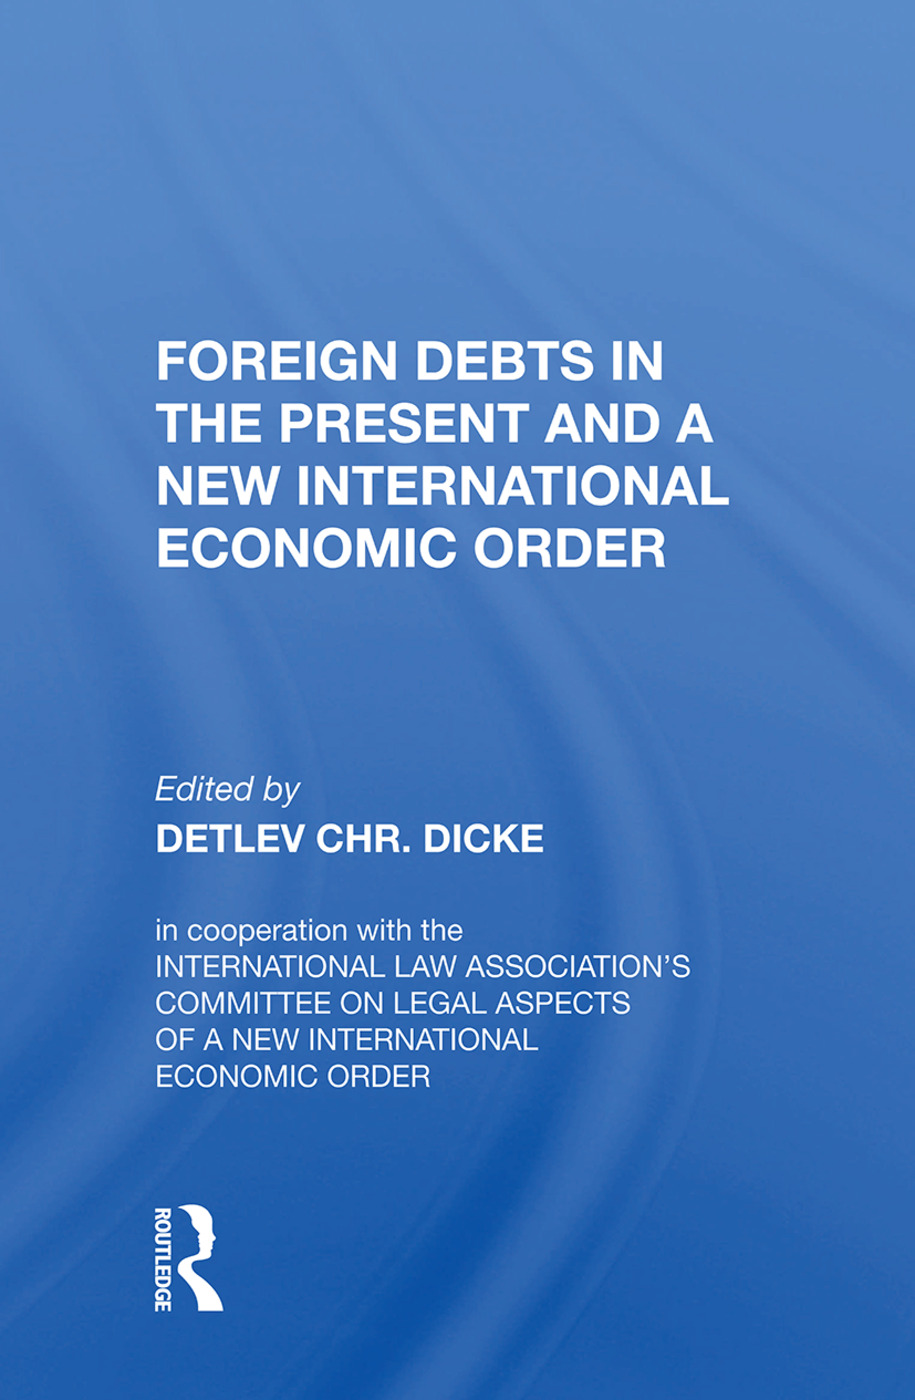 Foreign Debts in the Present and a New International Economic Order